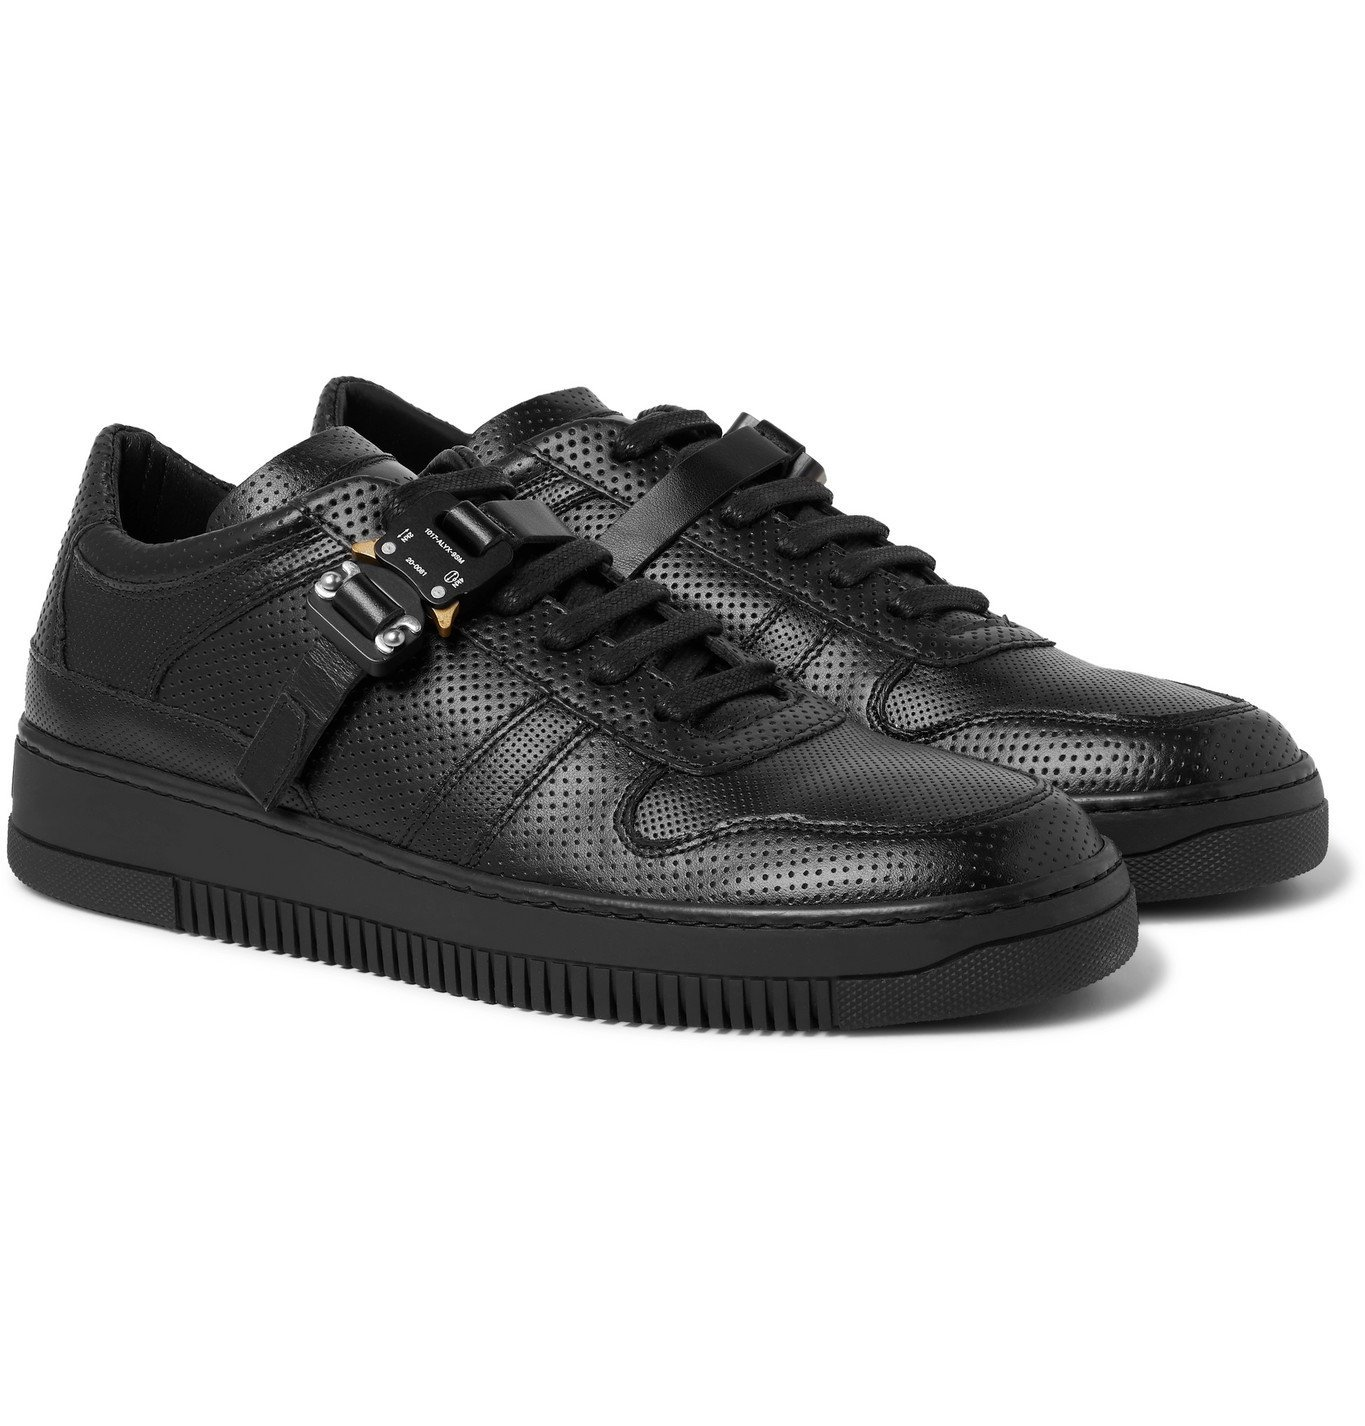 Photo: 1017 ALYX 9SM - Buckled Perforated-Leather Sneakers - Black